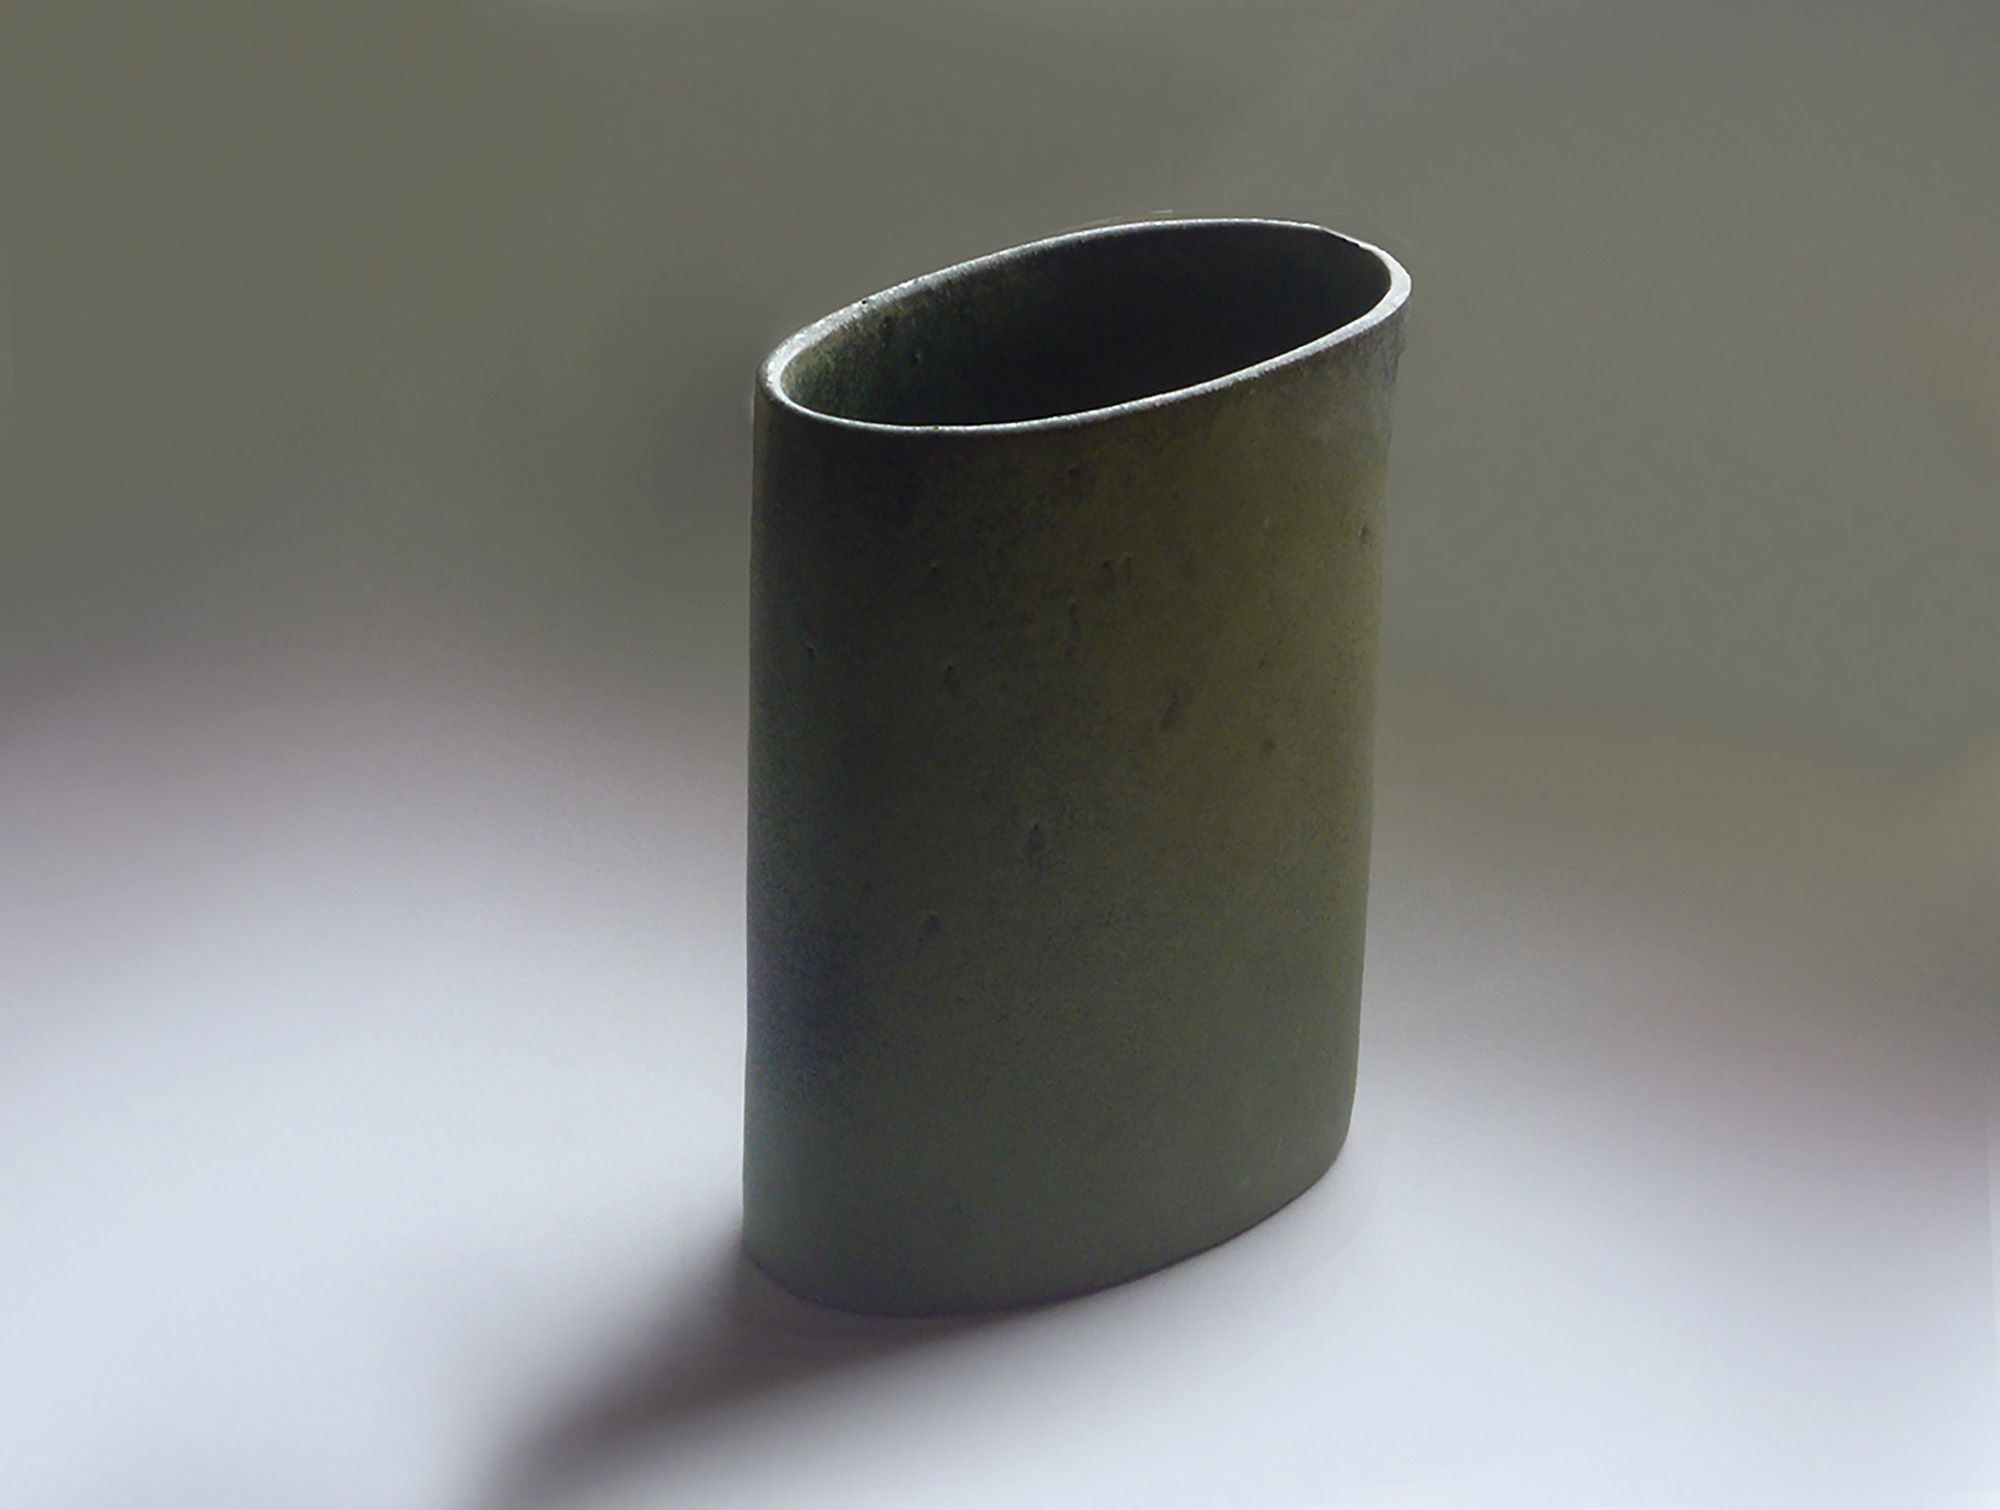 Short Oval Cylinder Vase in Moss Green Glaze